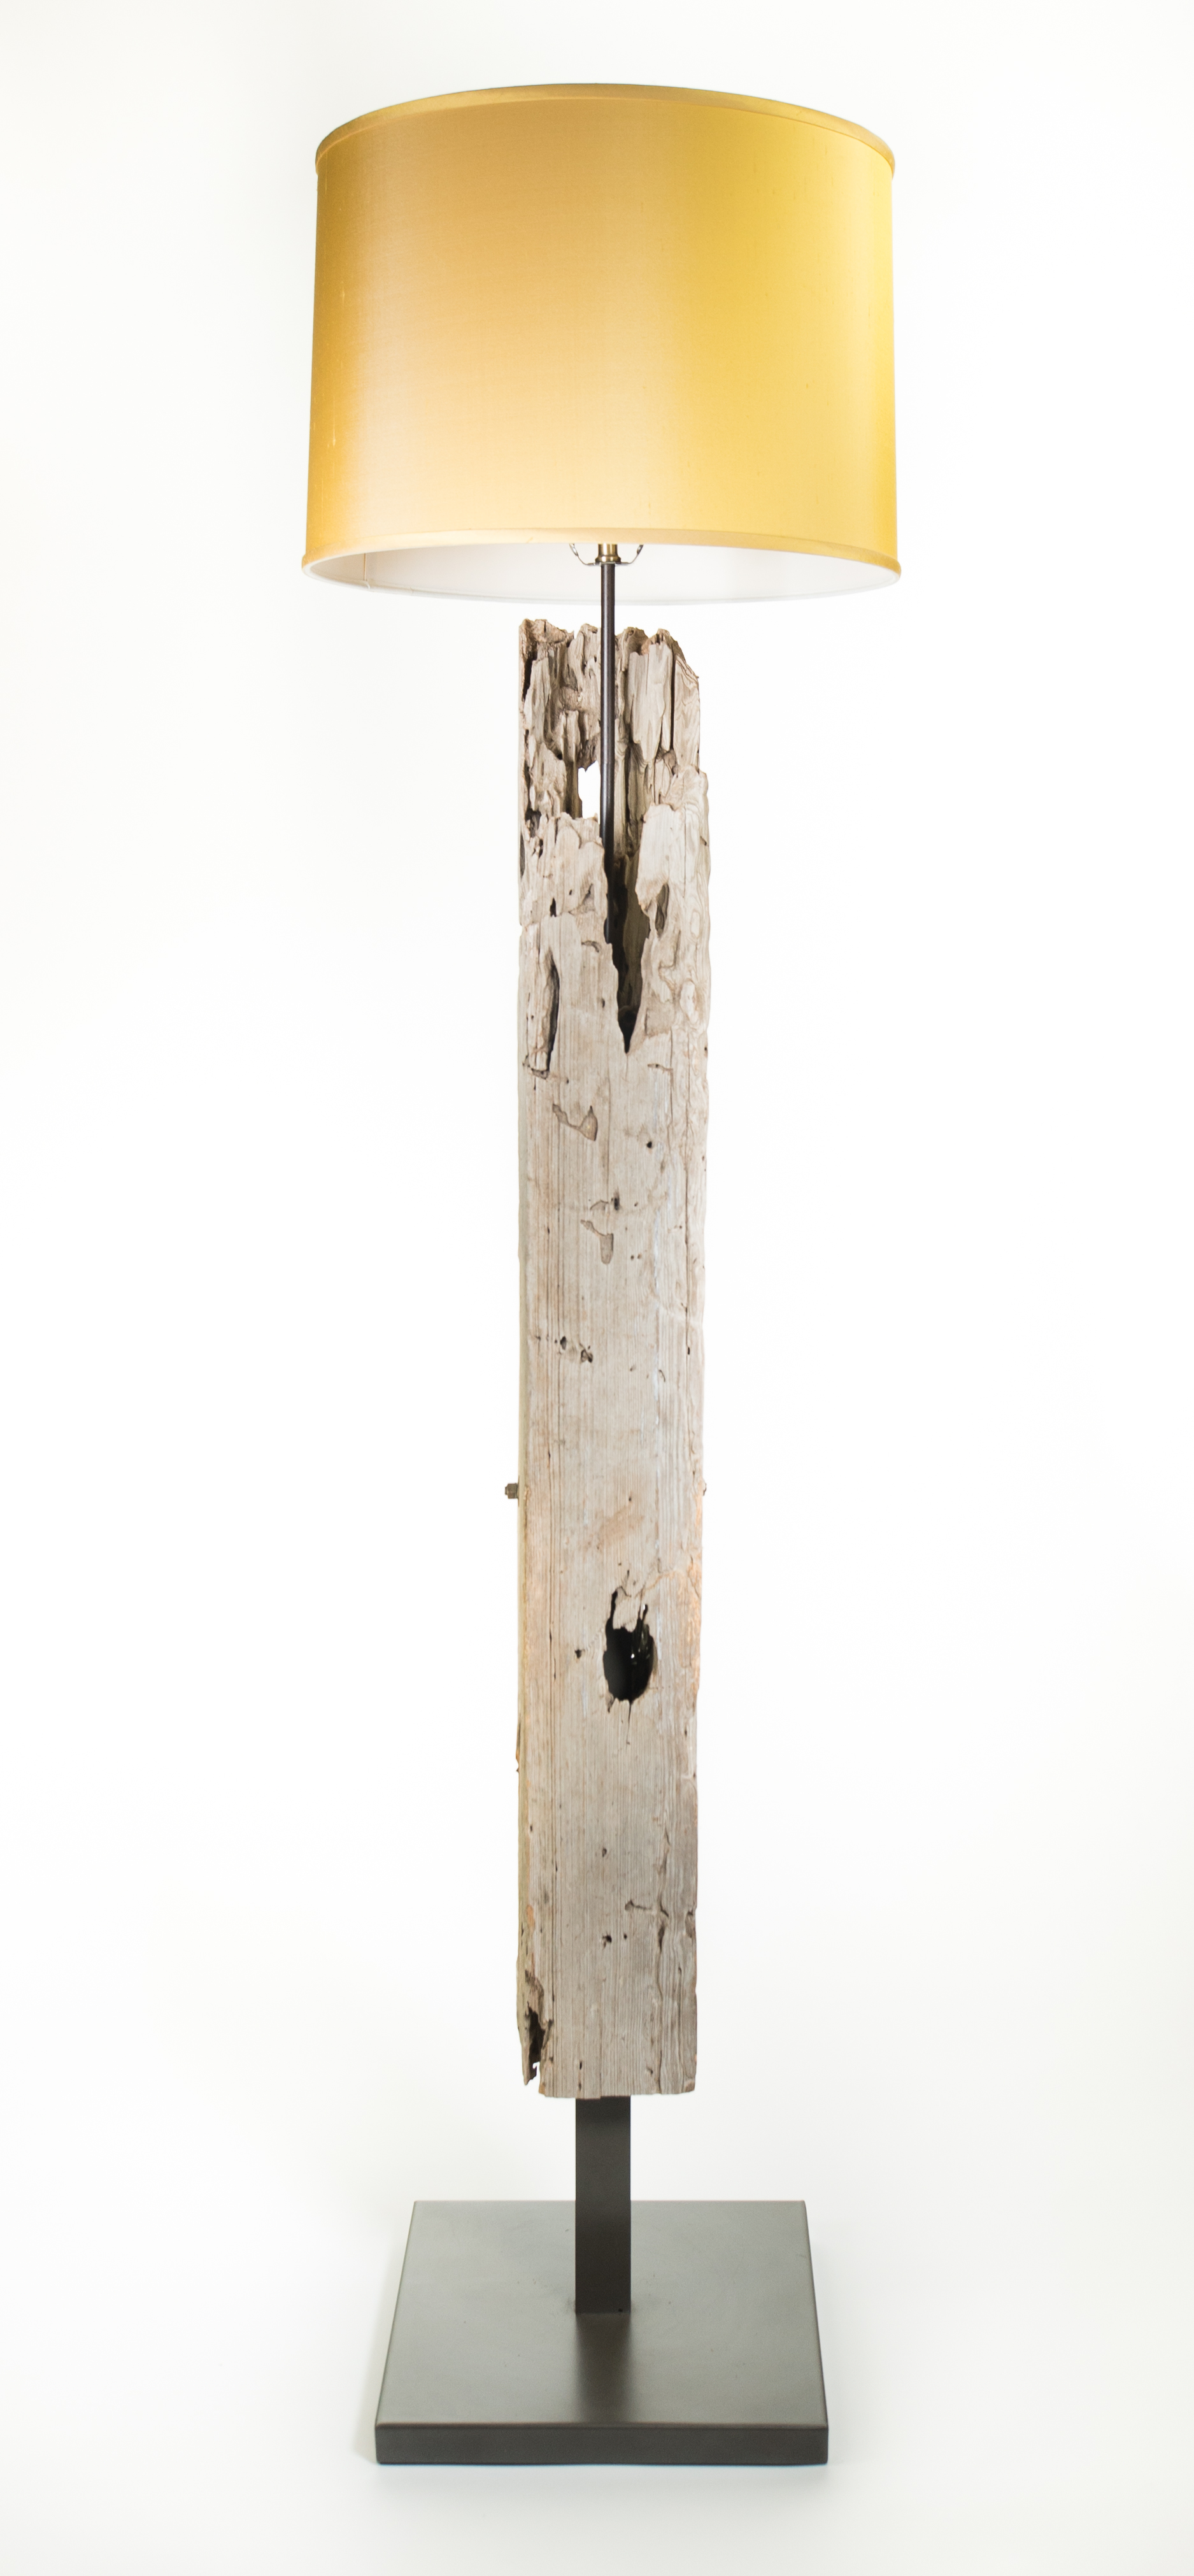 driftwood floor lamp cotton shade with rustic image abuja brown